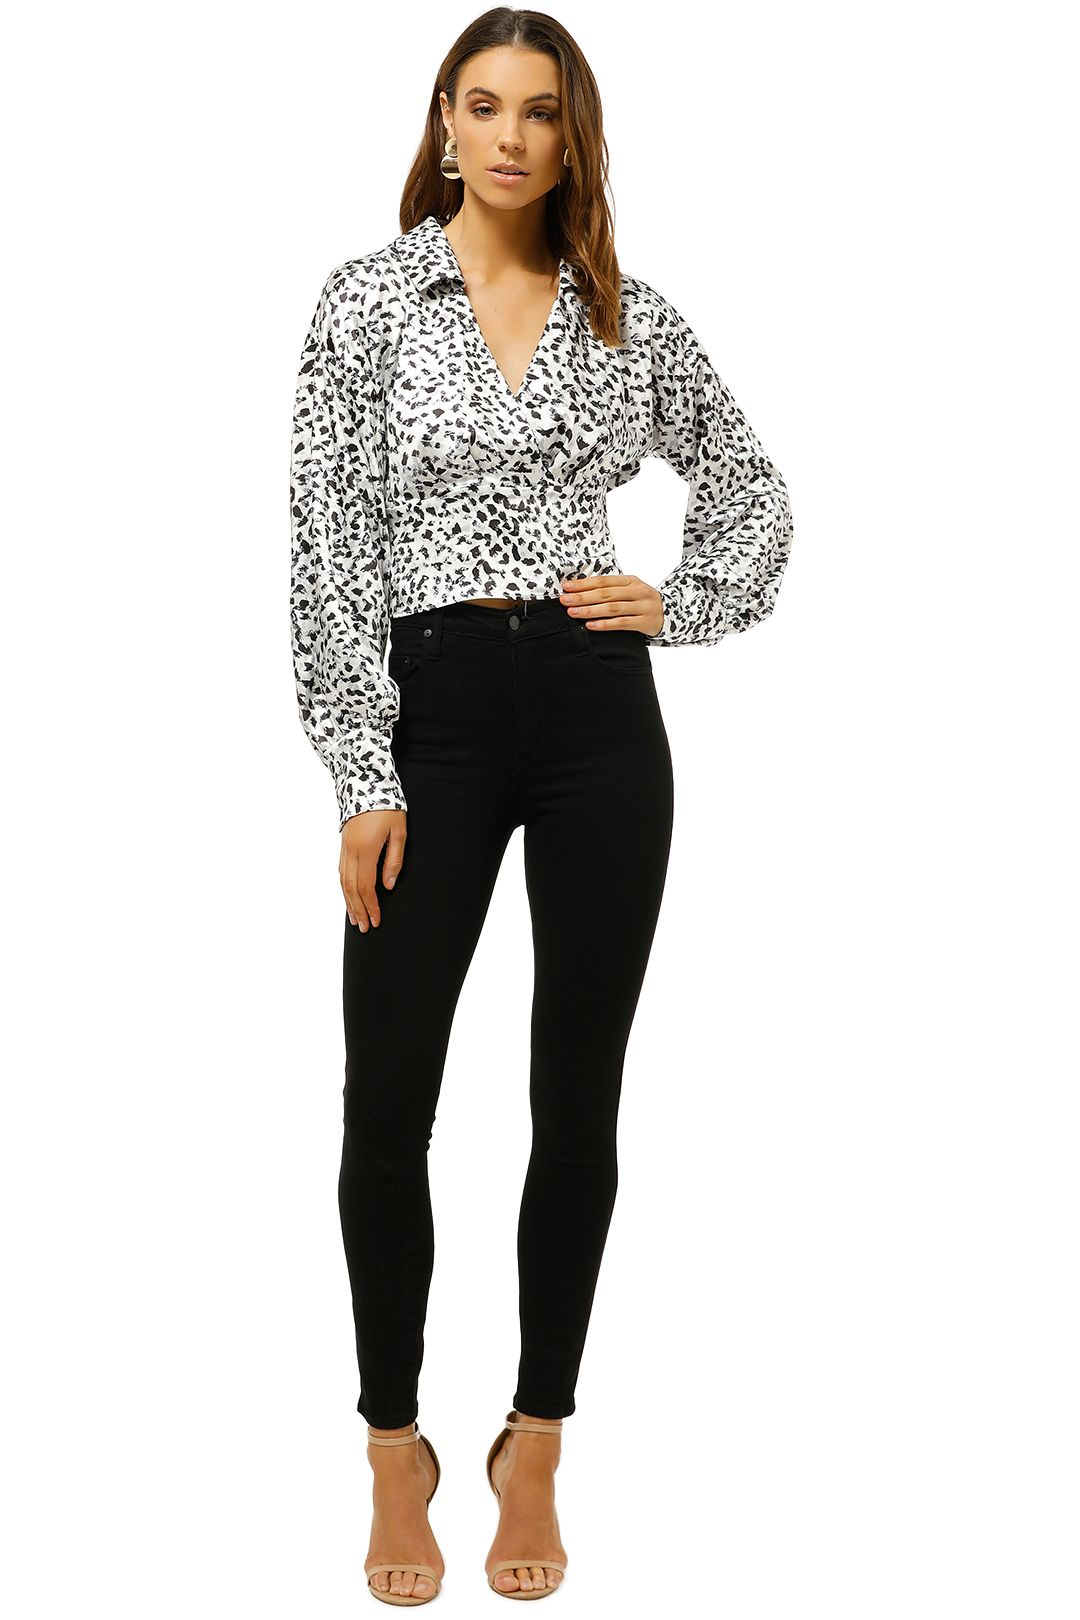 CMEO-Collective-Polarised-Top-Ivory-Painted-Spot-Front